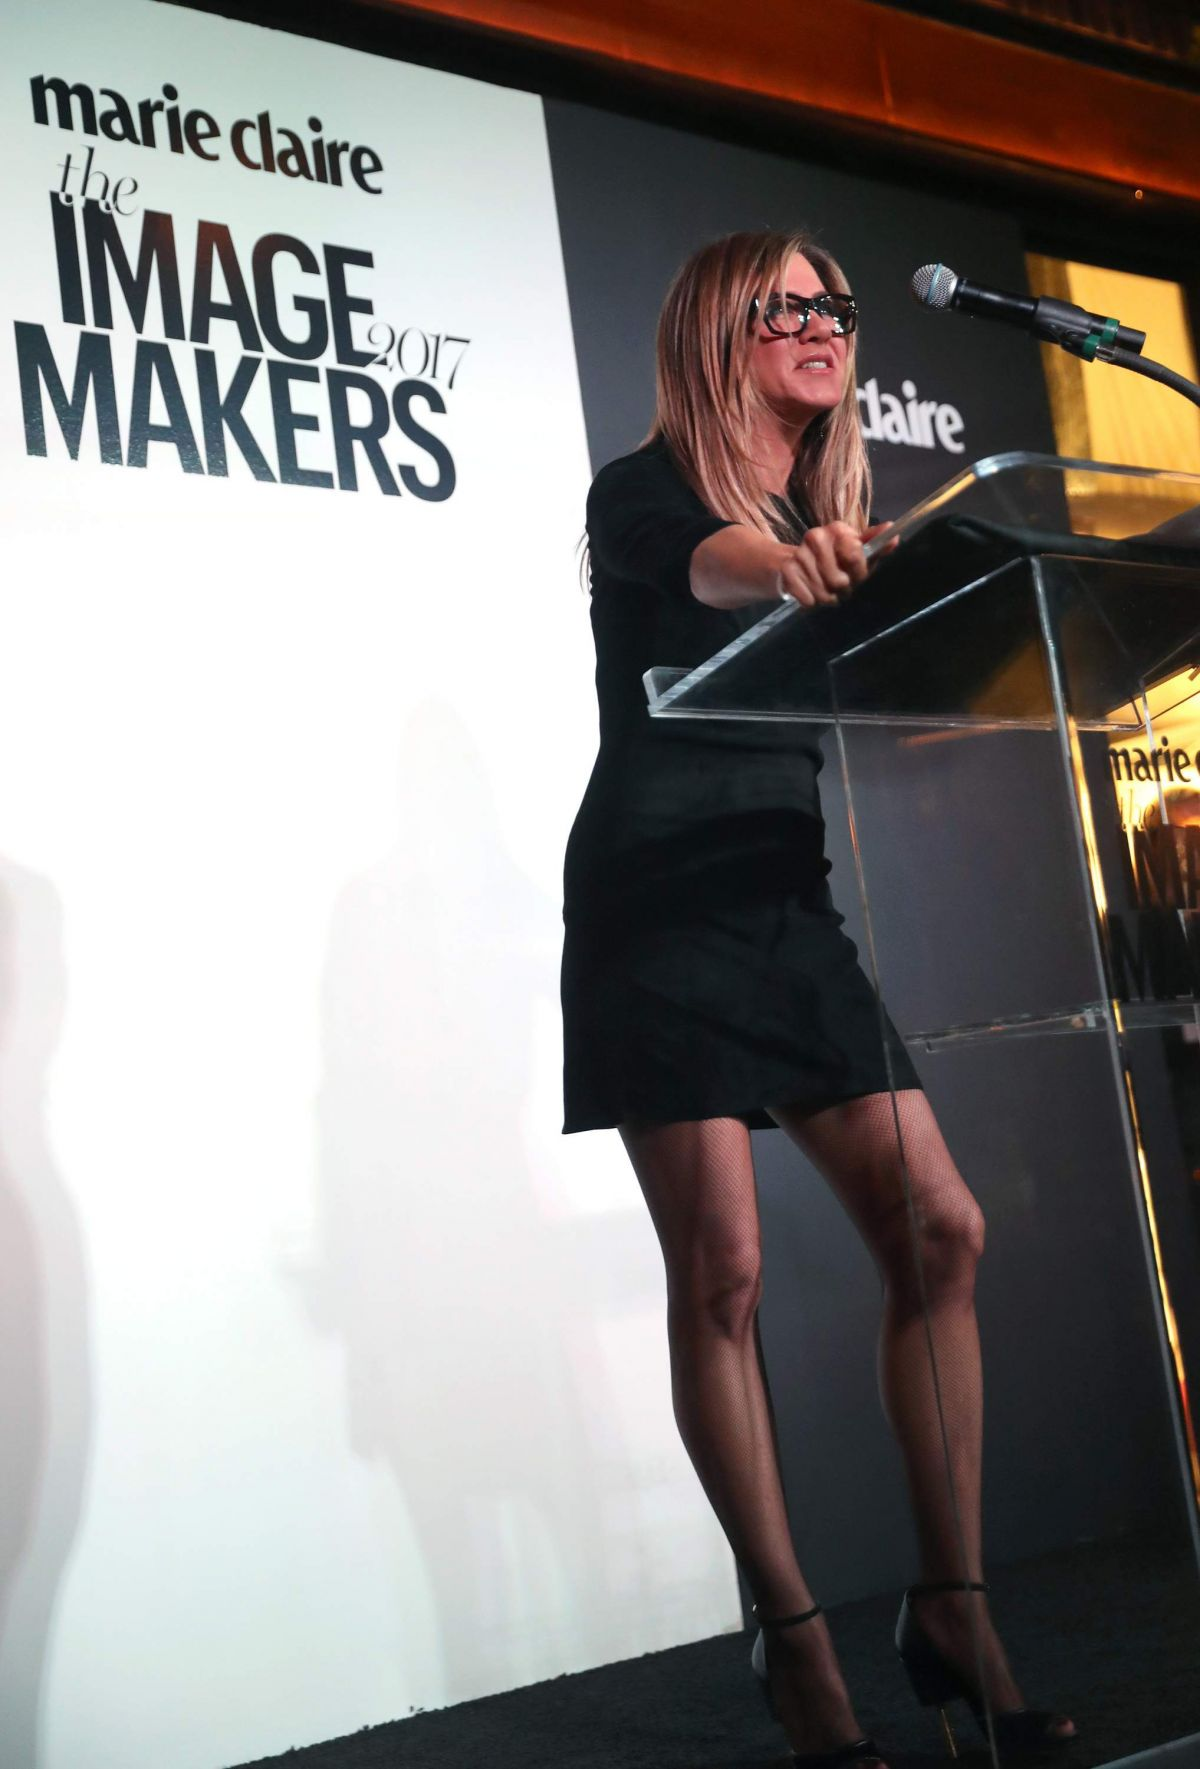 JENNIFER ANISTON at Marie Claire's Image Maker Awards 2017 in West Hollywood 01/10/2017   jennifer-aniston-at-marie-claire-s-image-maker-awards-2017-in-west-hollywood-01-10-2017_1